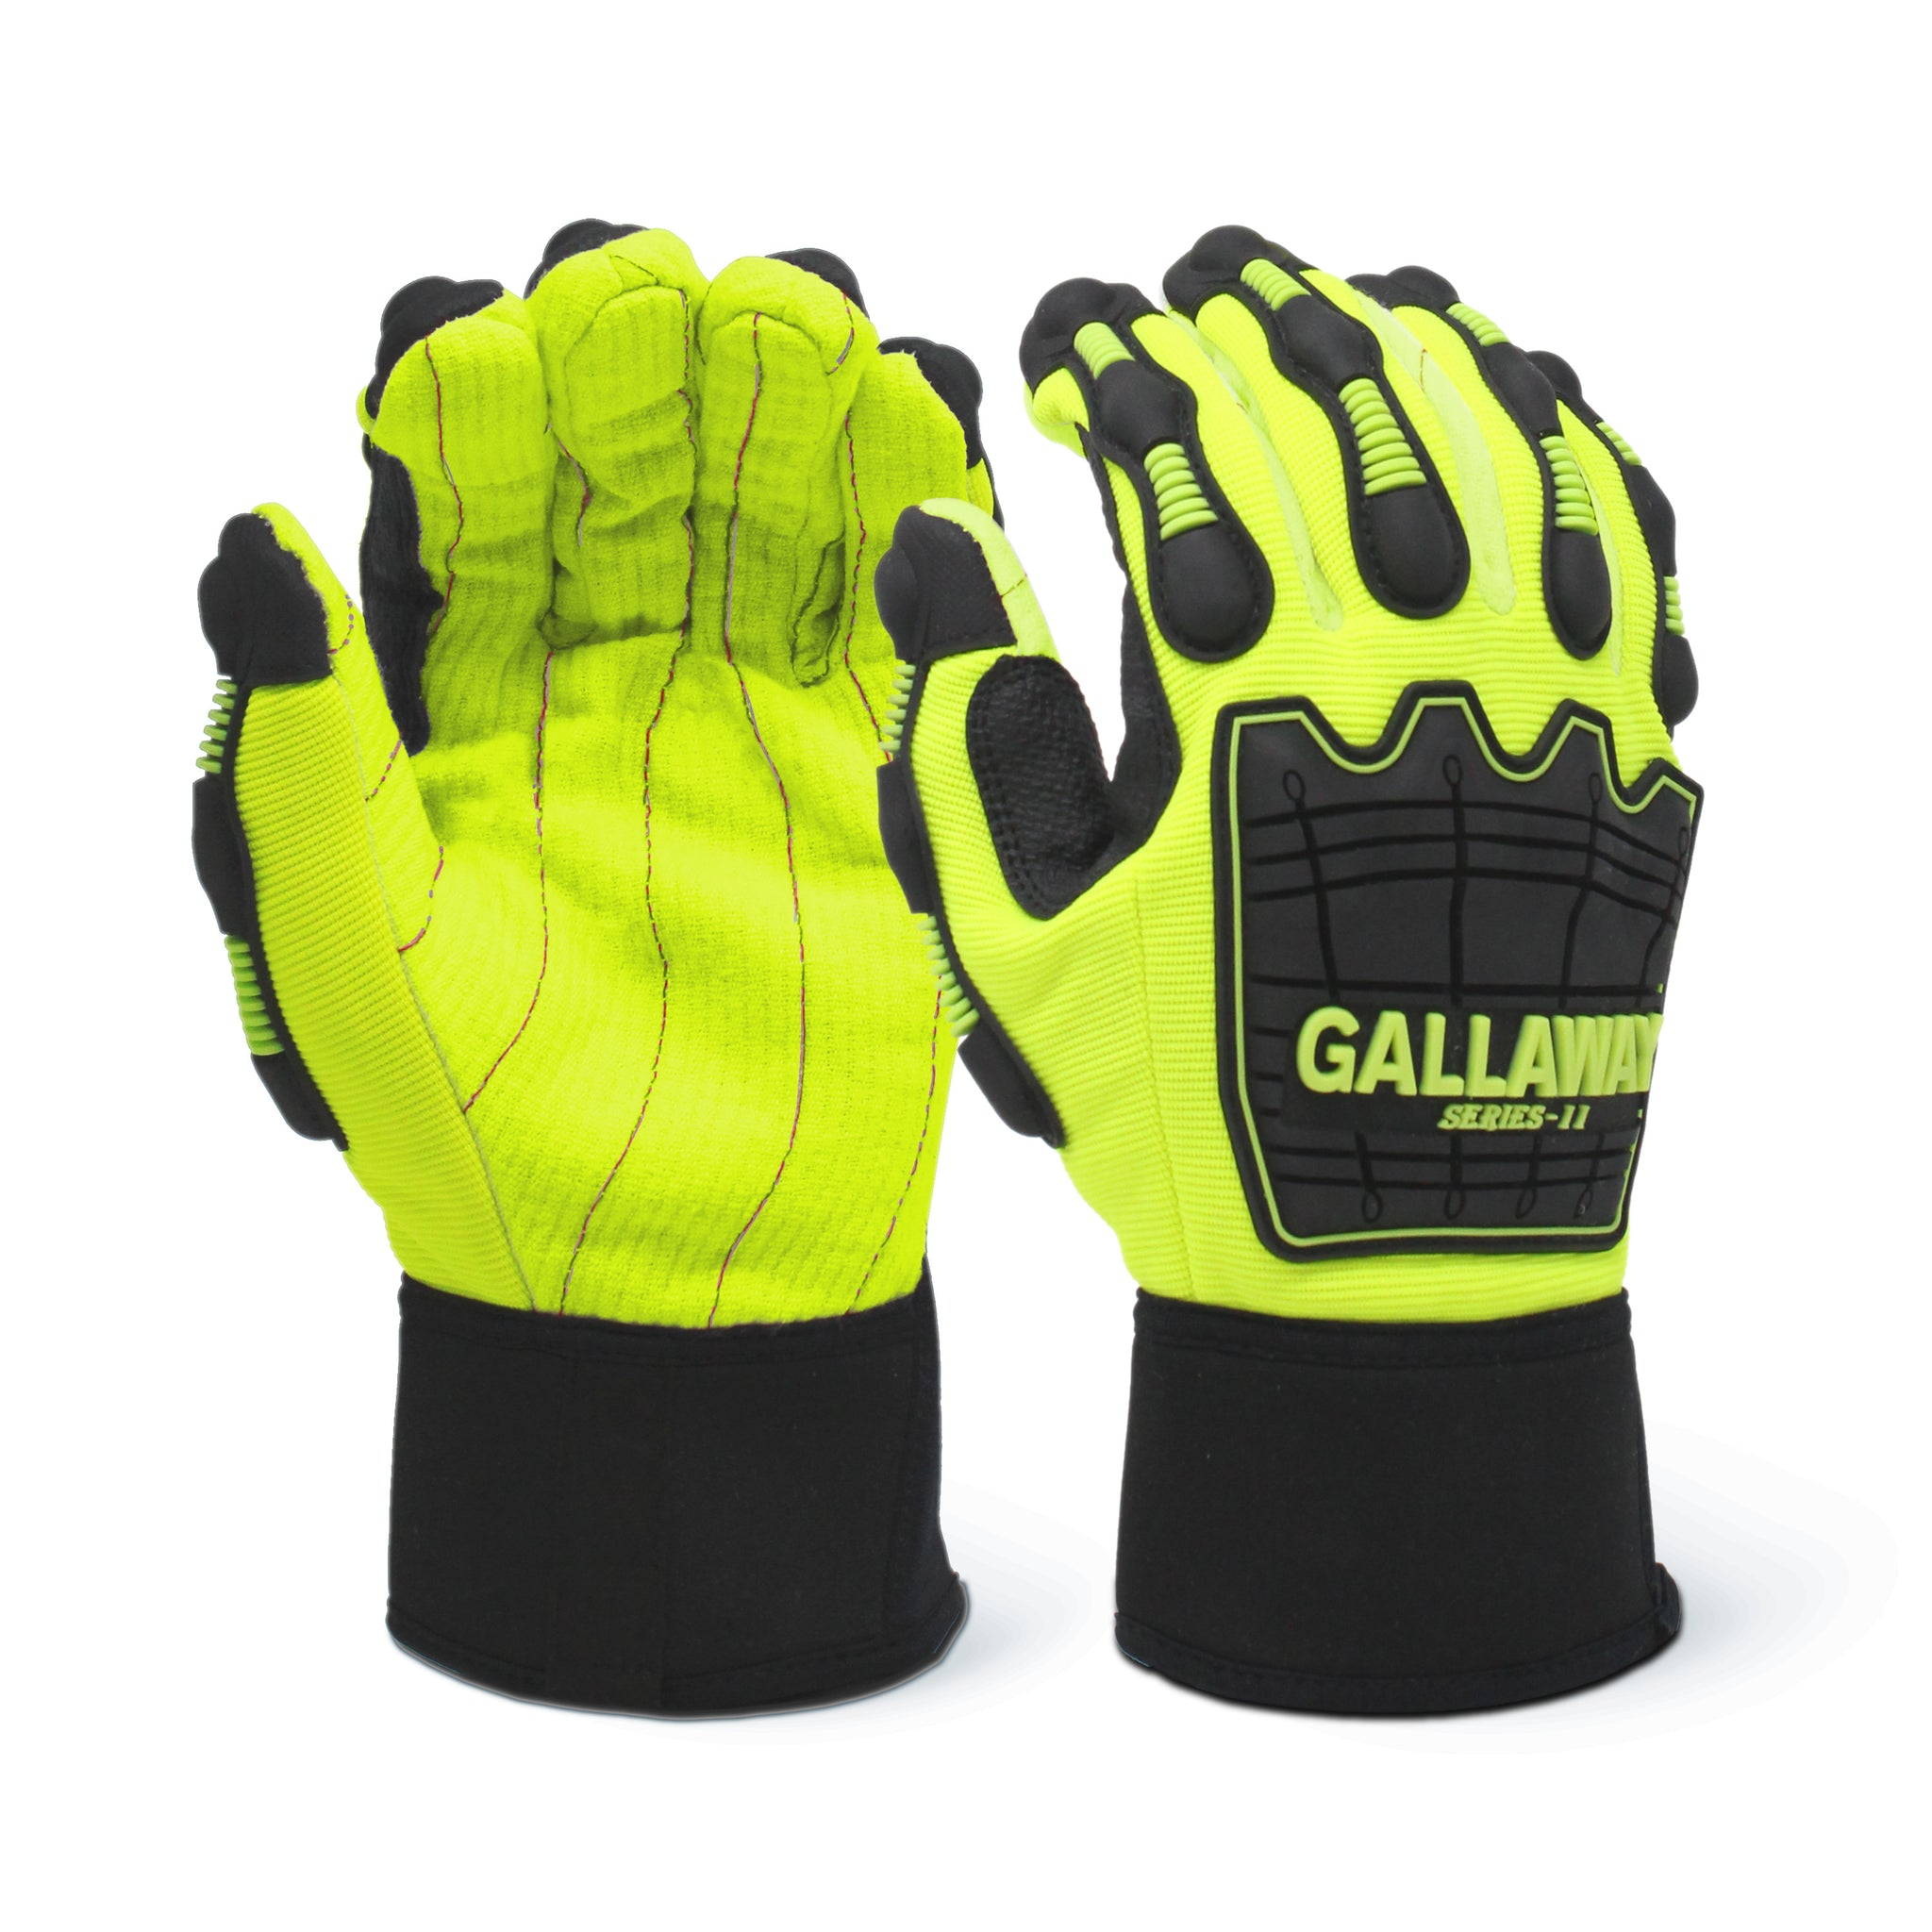 GTPRS2 High Impact Gloves